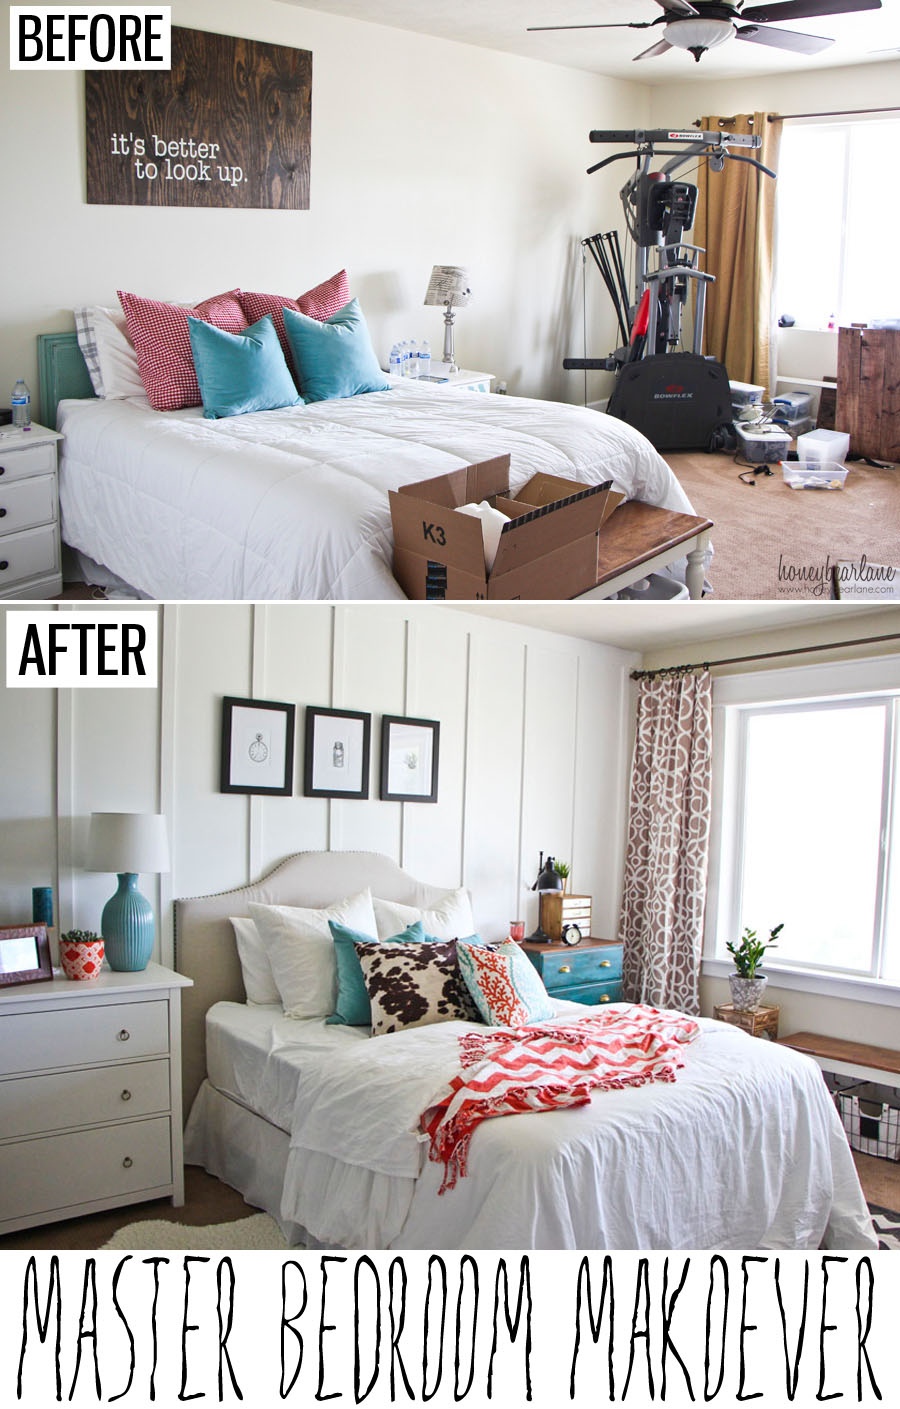 Master bedroom makeover honeybear lane for Room makeover